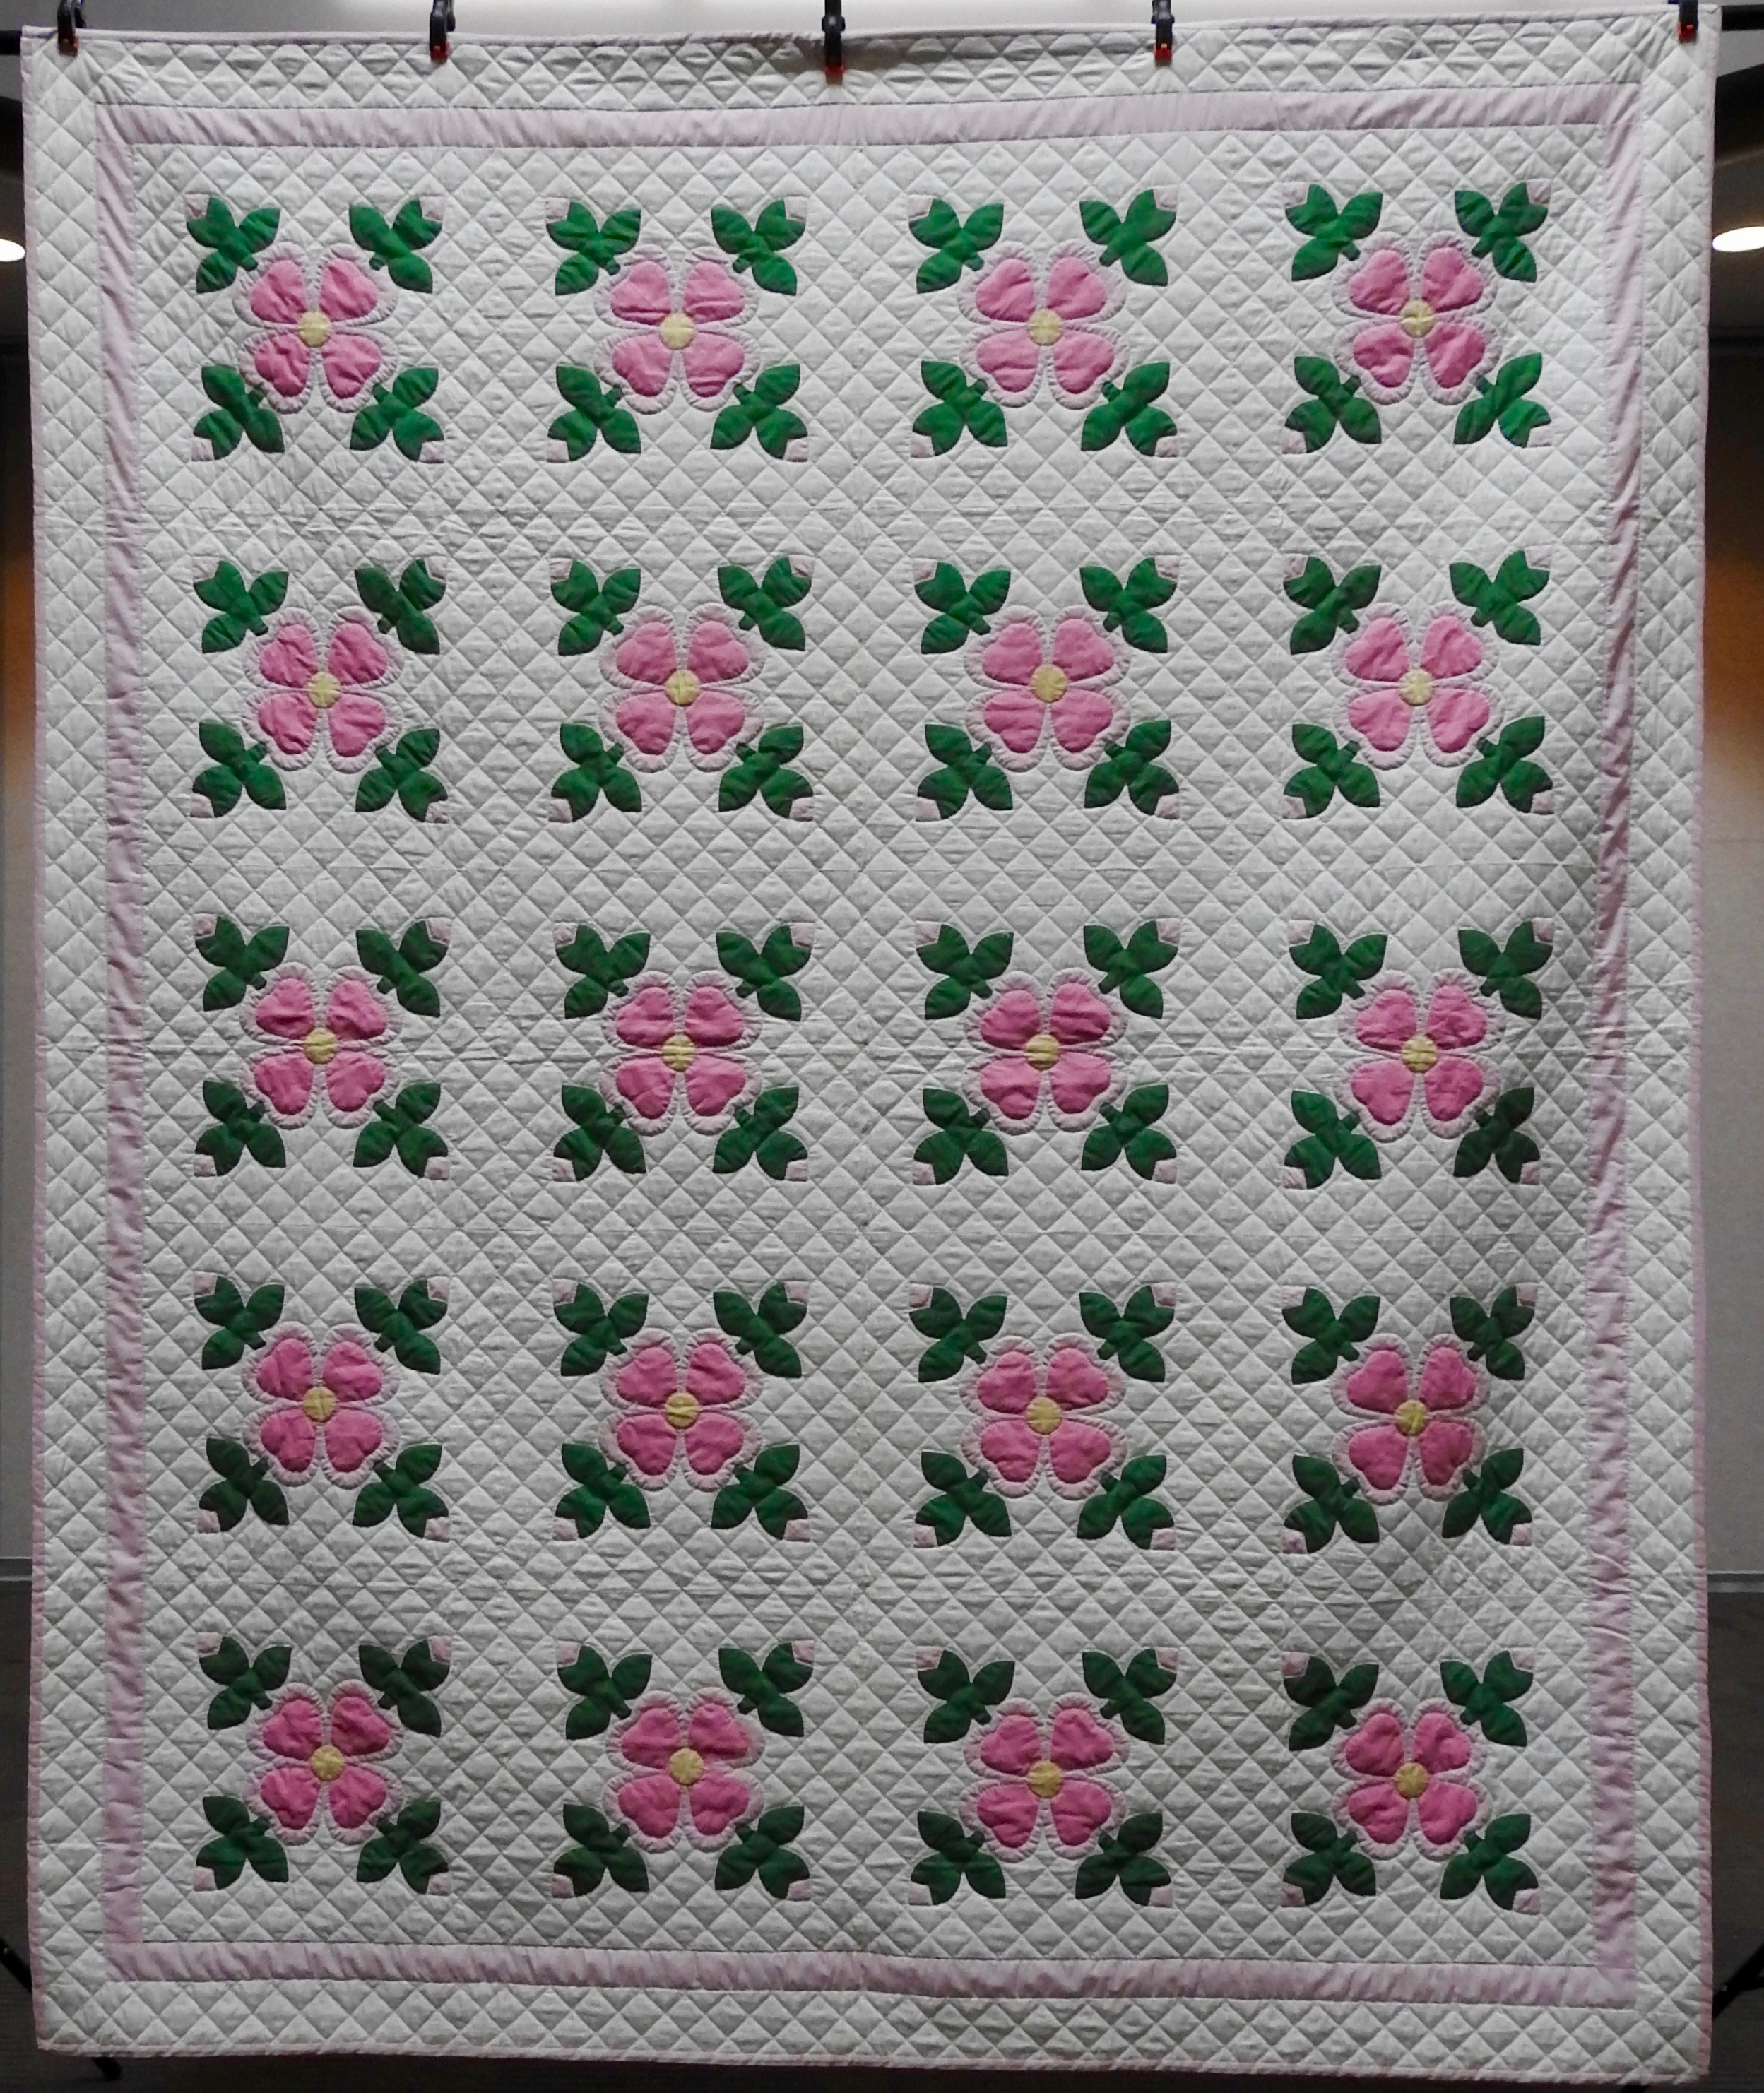 Ohio Rose, Appliquéd & Hand Quilted by Isabel Leipprandt, Signed & Dated, donated by Wayne & Karen Moss, 80 x 86""